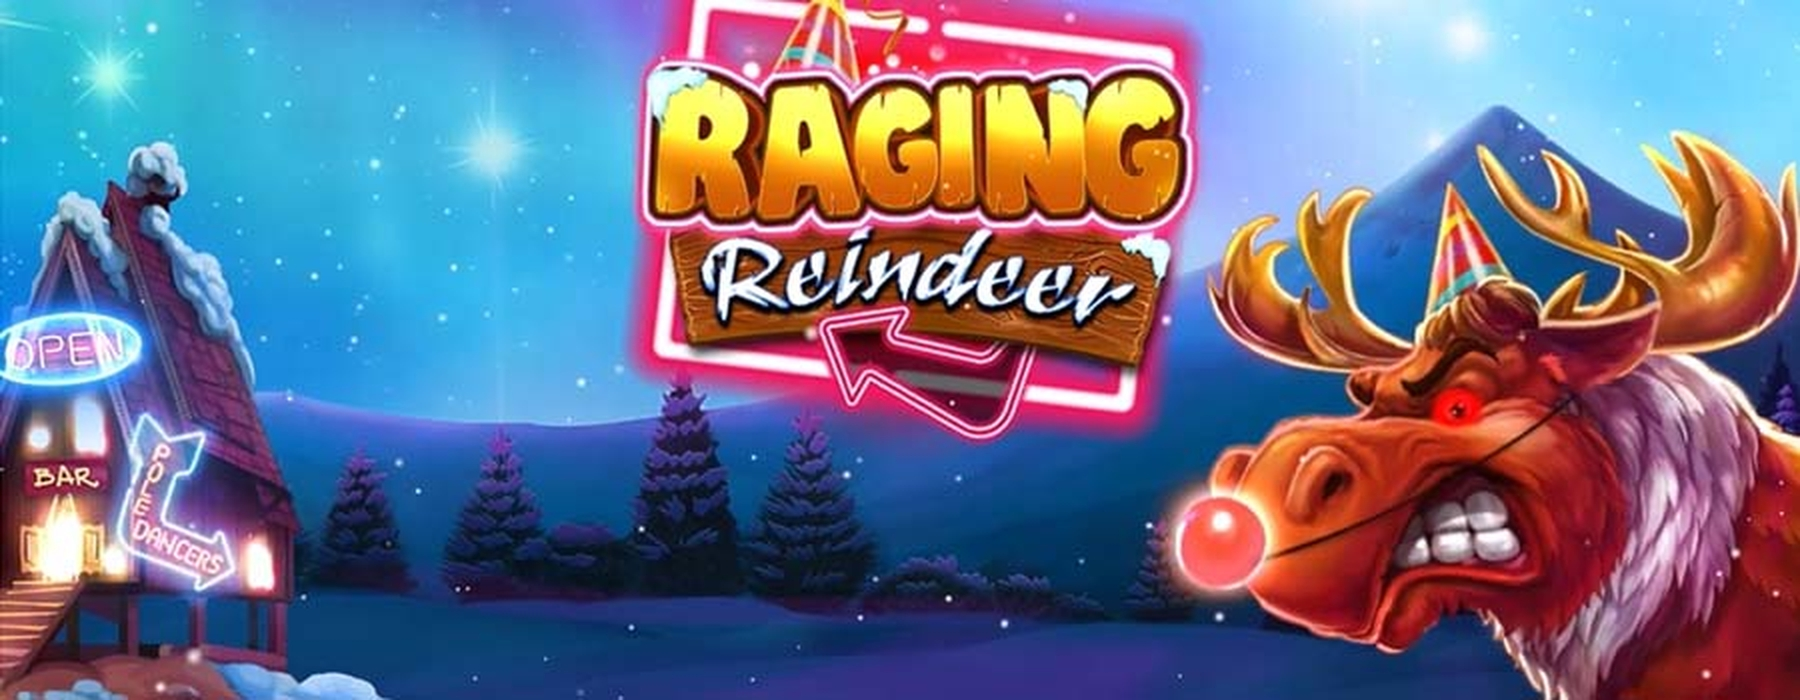 The Raging Reindeer Online Slot Demo Game by iSoftBet